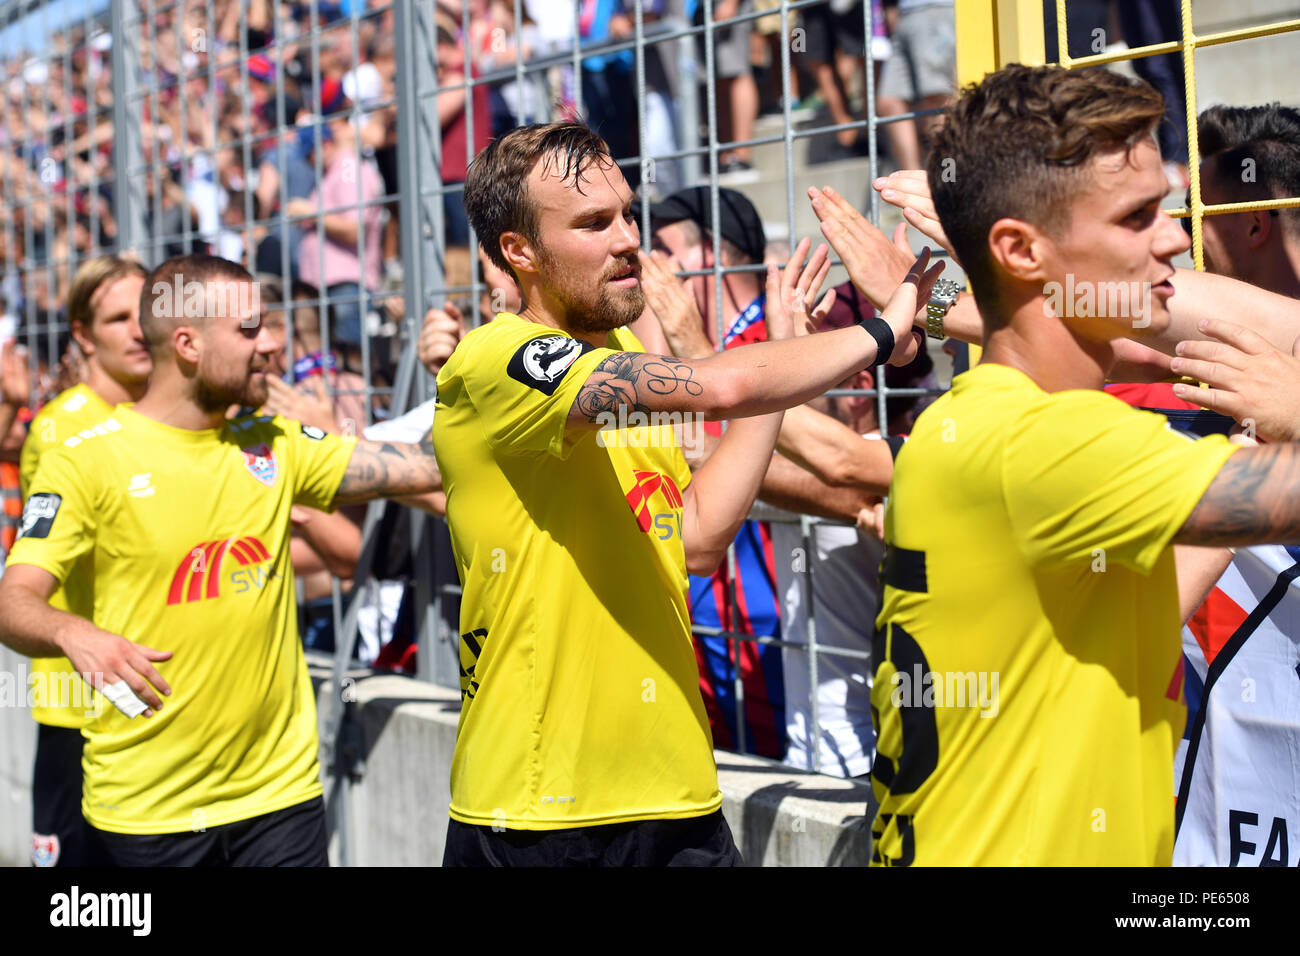 Munich, Deutschland. 12th Aug, 2018. Kevin GROSSKREUTZ (Grovukreutz, KFC, withte), celebrates after the end of the game with the Krefeld fans, football fans. Soccer 3. Liga, 4. matchday, TSV Munich 1860-KFC Uerdingen 0-1, on 12/08/2018. Stadium at Gruenwalder Strasse in Munich, DFL REGULATIONS PROHIBIT ANY USE OF PHOTOGRAPH AS IMAGE SEQUENCES AND/OR QUASI VIDEO. | usage worldwide Credit: dpa/Alamy Live News - Stock Image